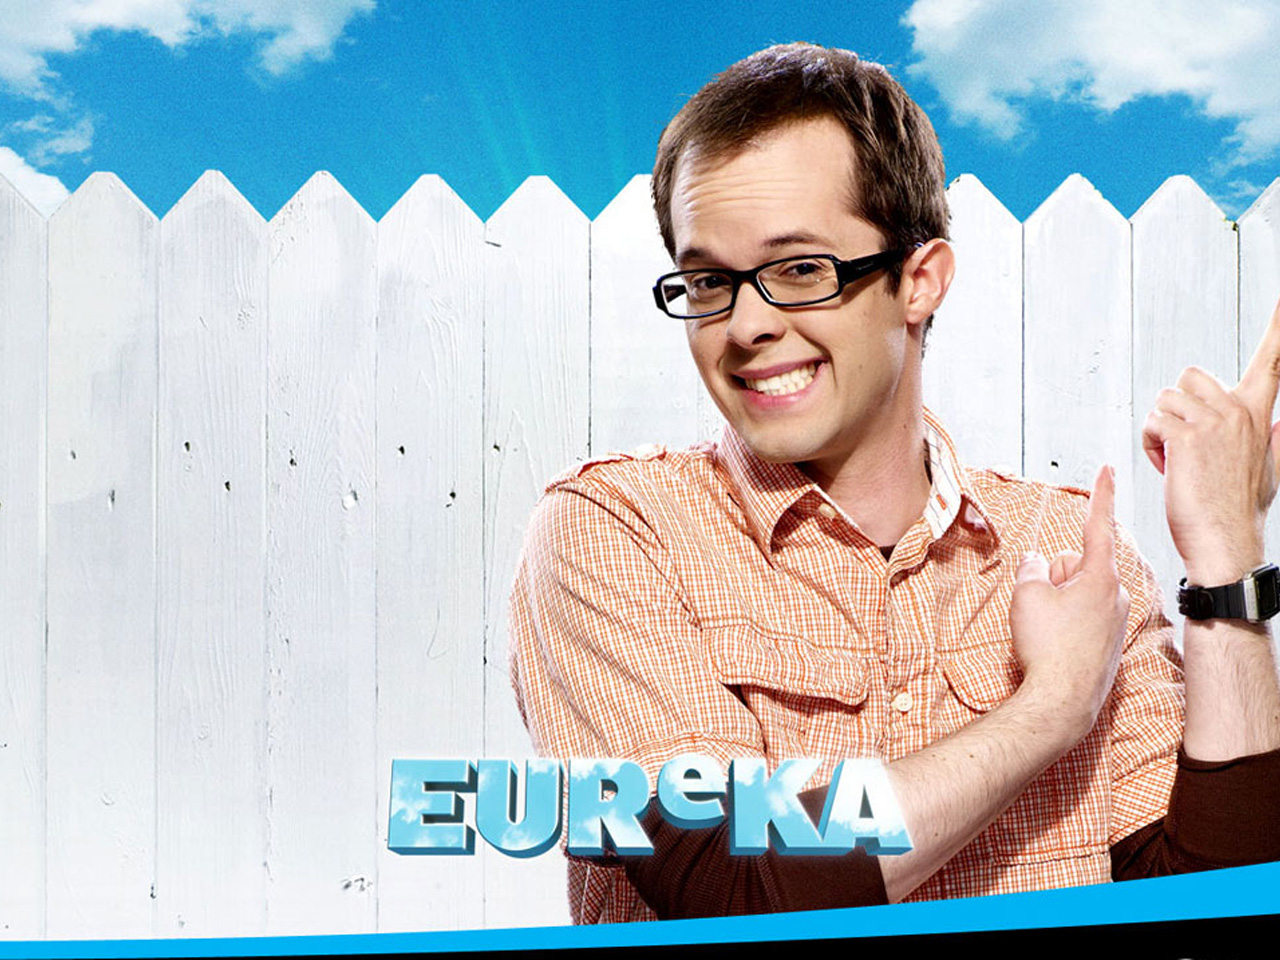 Eureka wallpaper 15